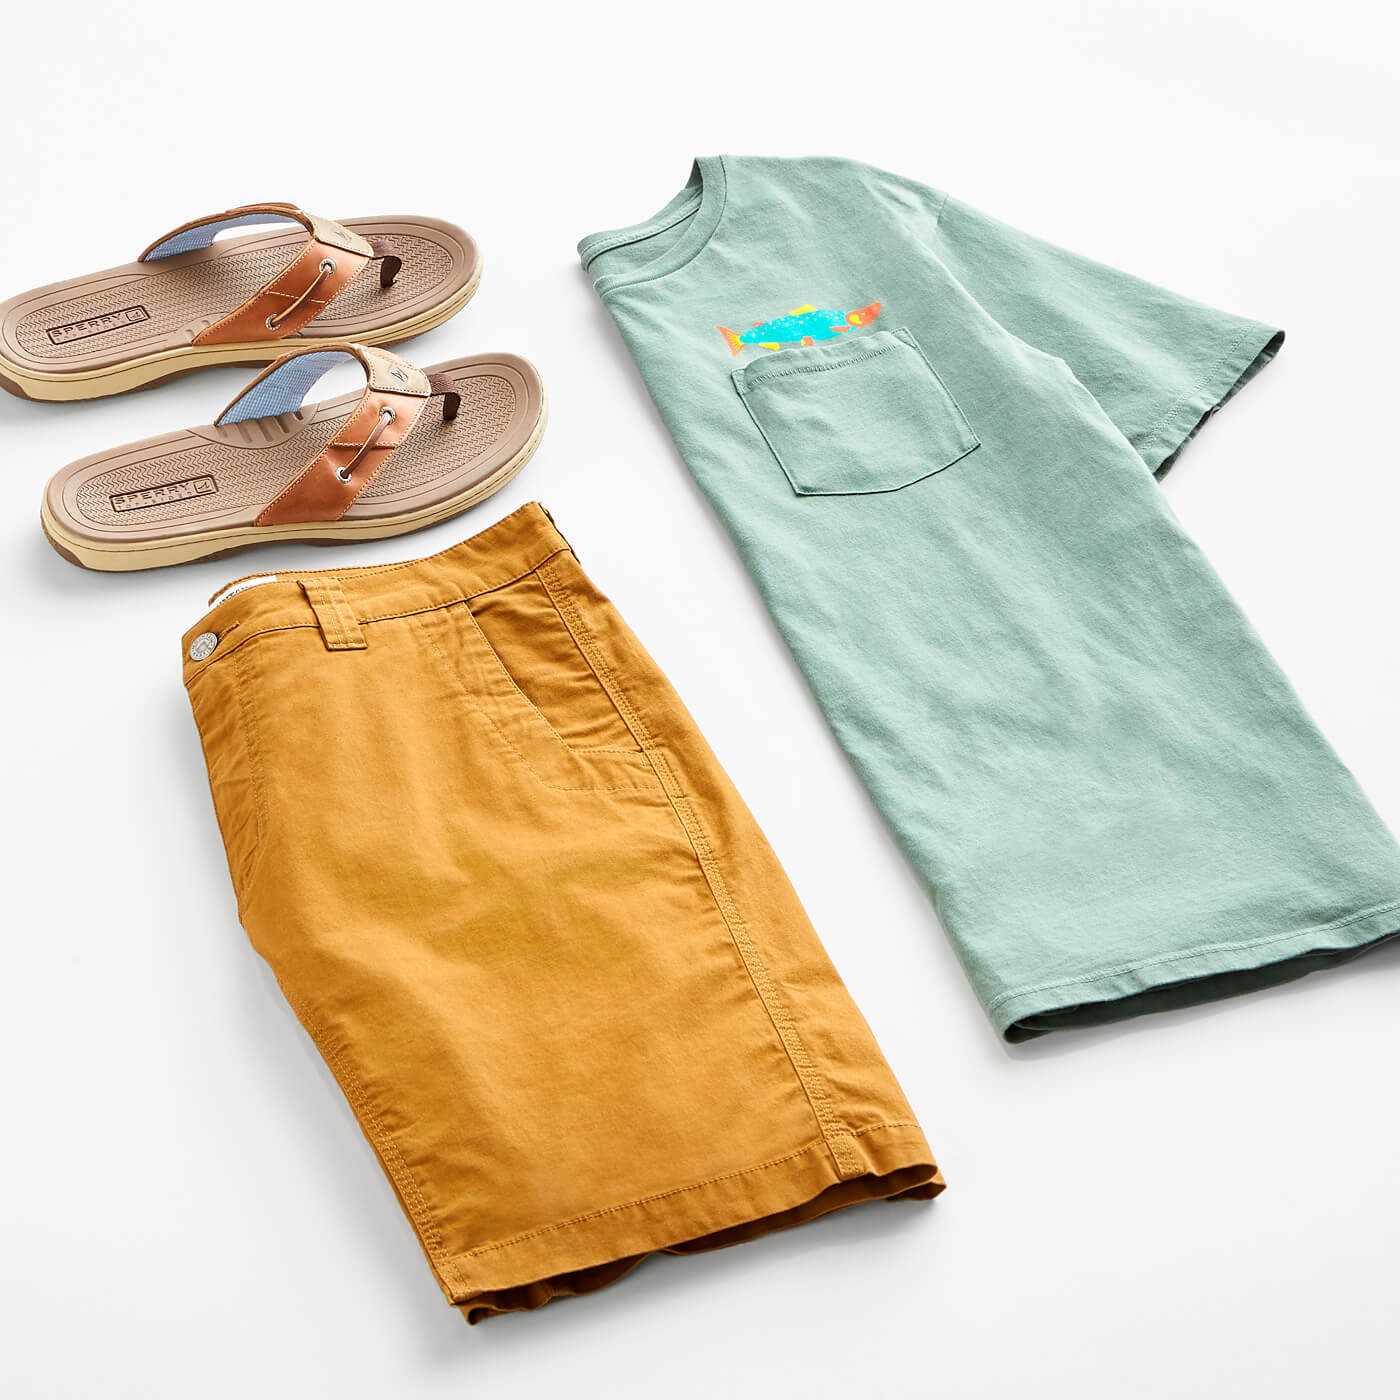 men's t-shirt, shorts and sandals